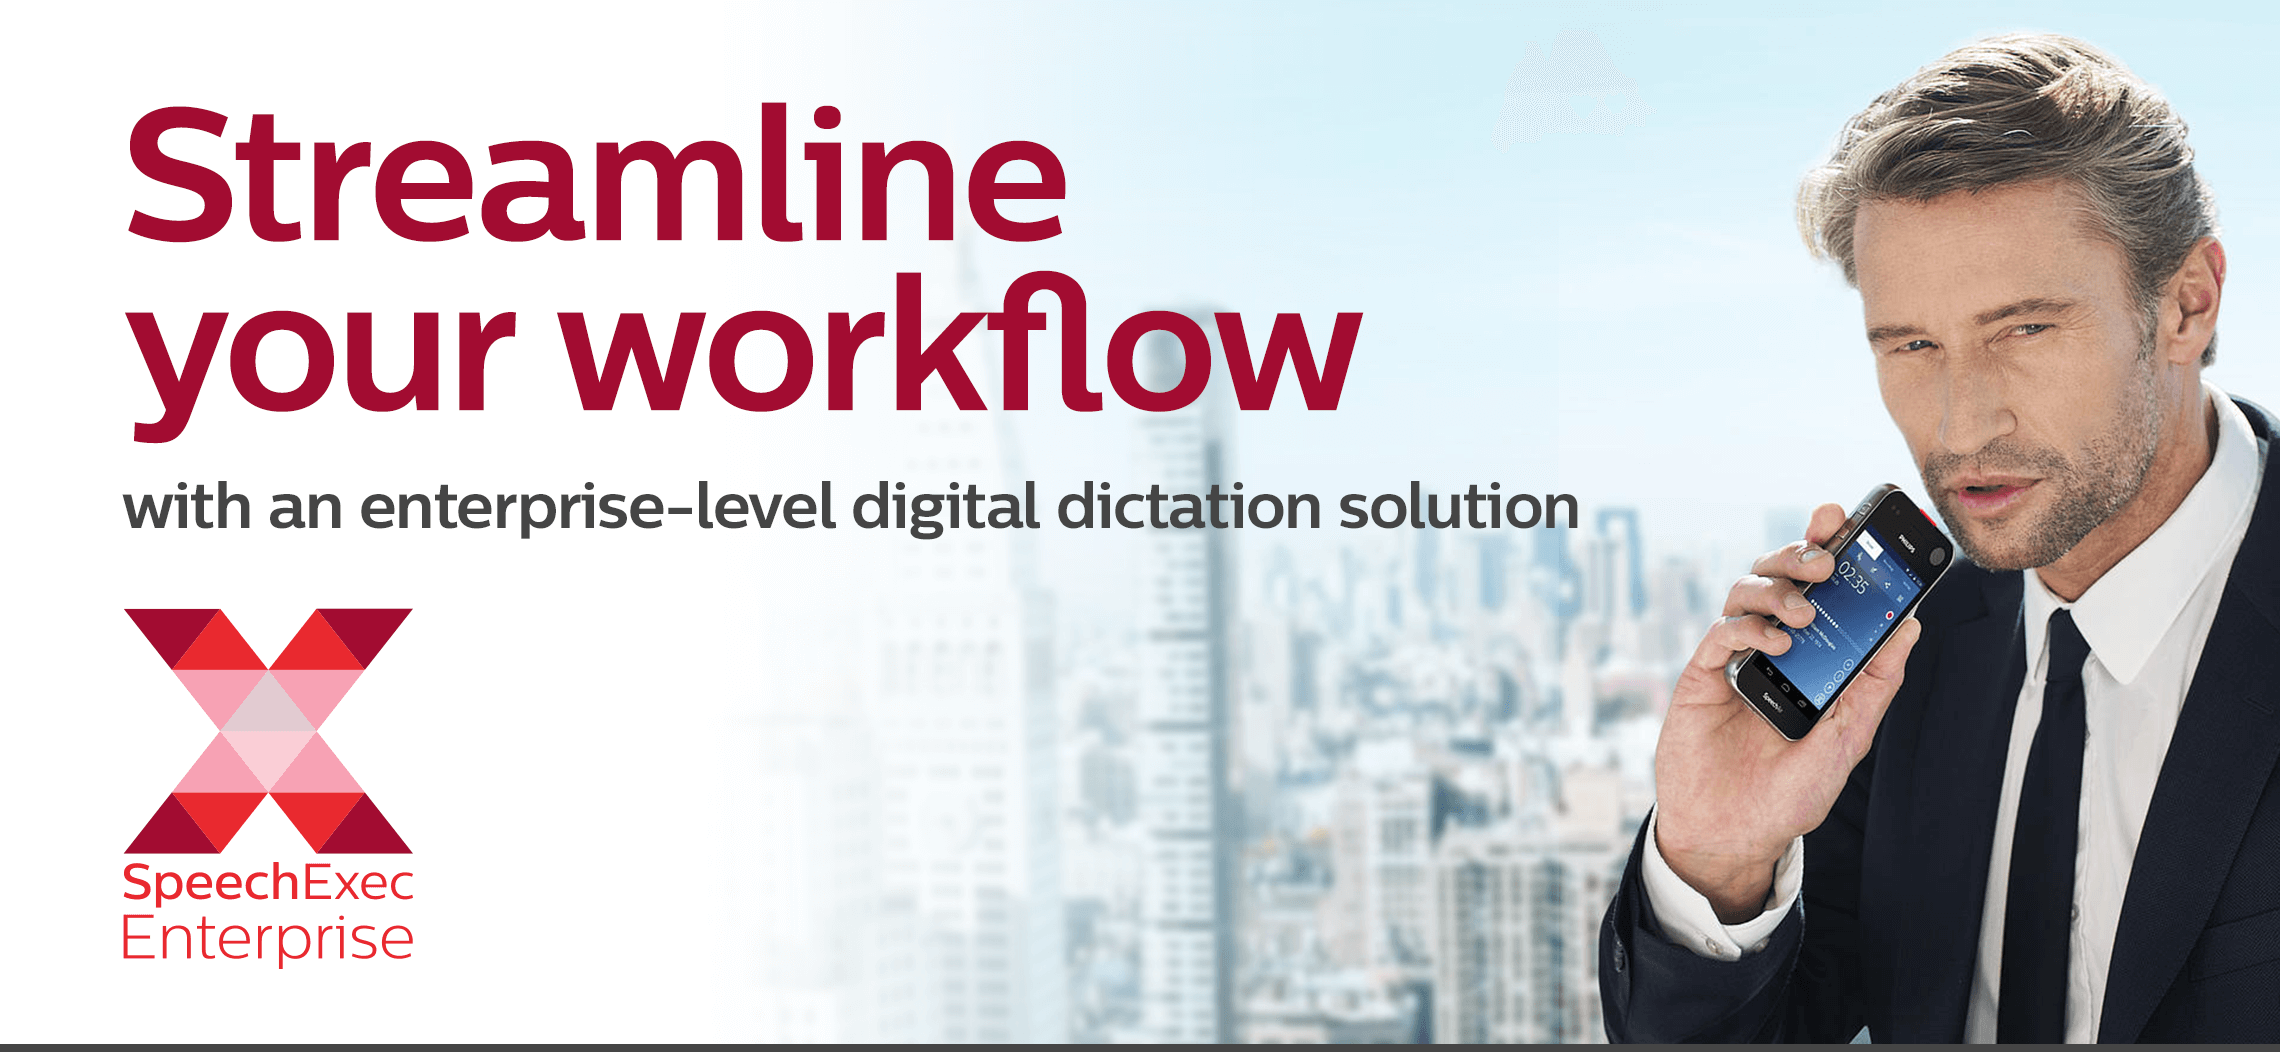 Streamline your workflow with an enterprise-level digital dictation solution.